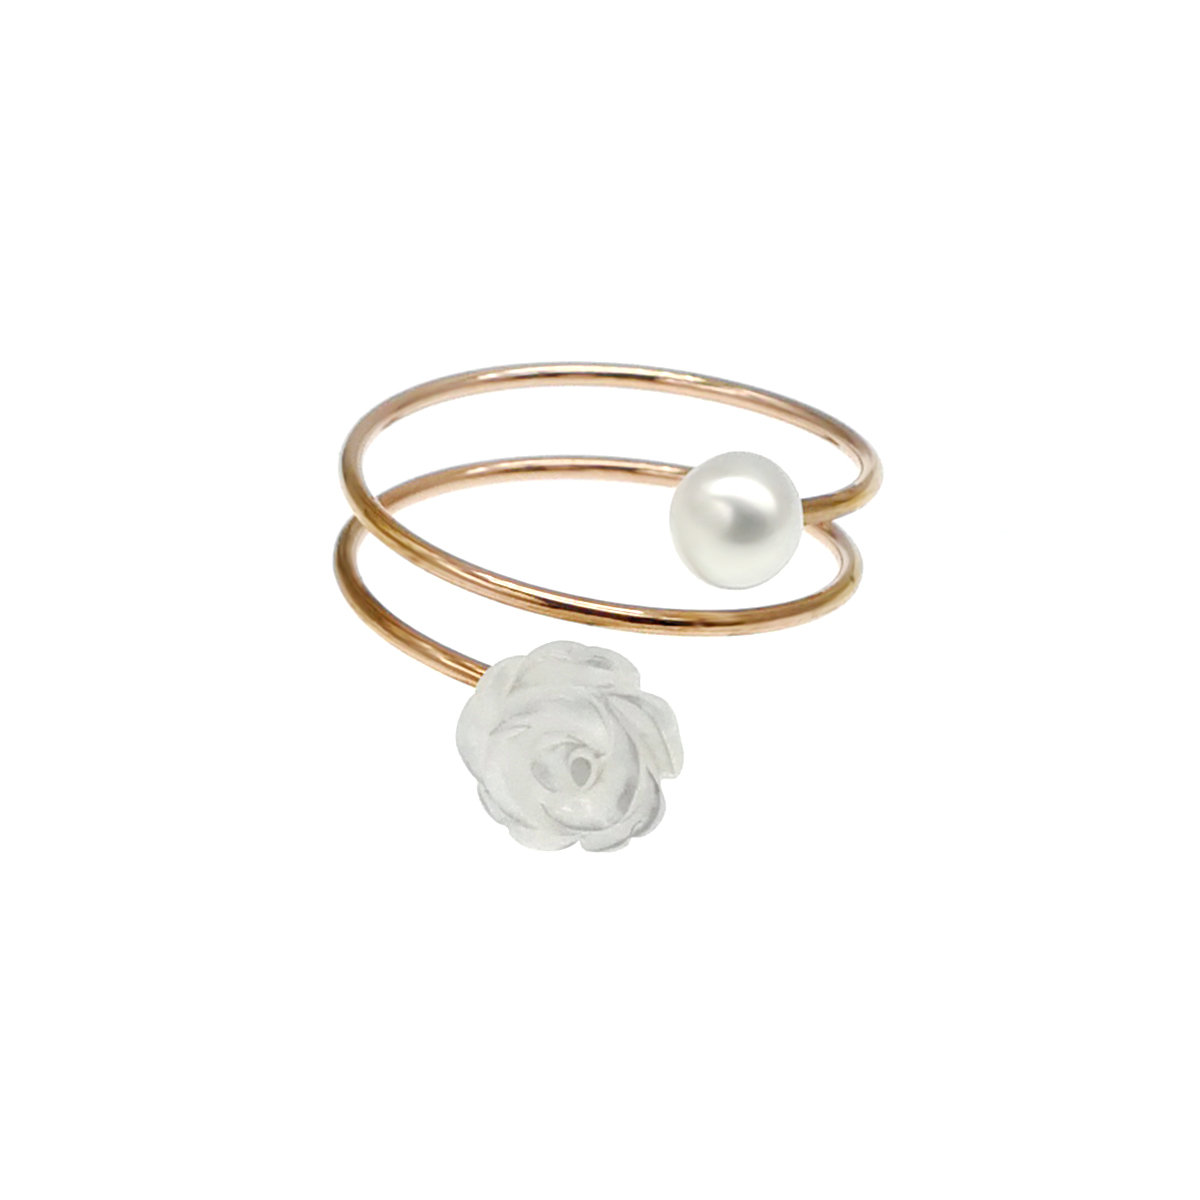 Floral- MOP & Cultured fresh water pearl with 14K gold filled 925 silver ring